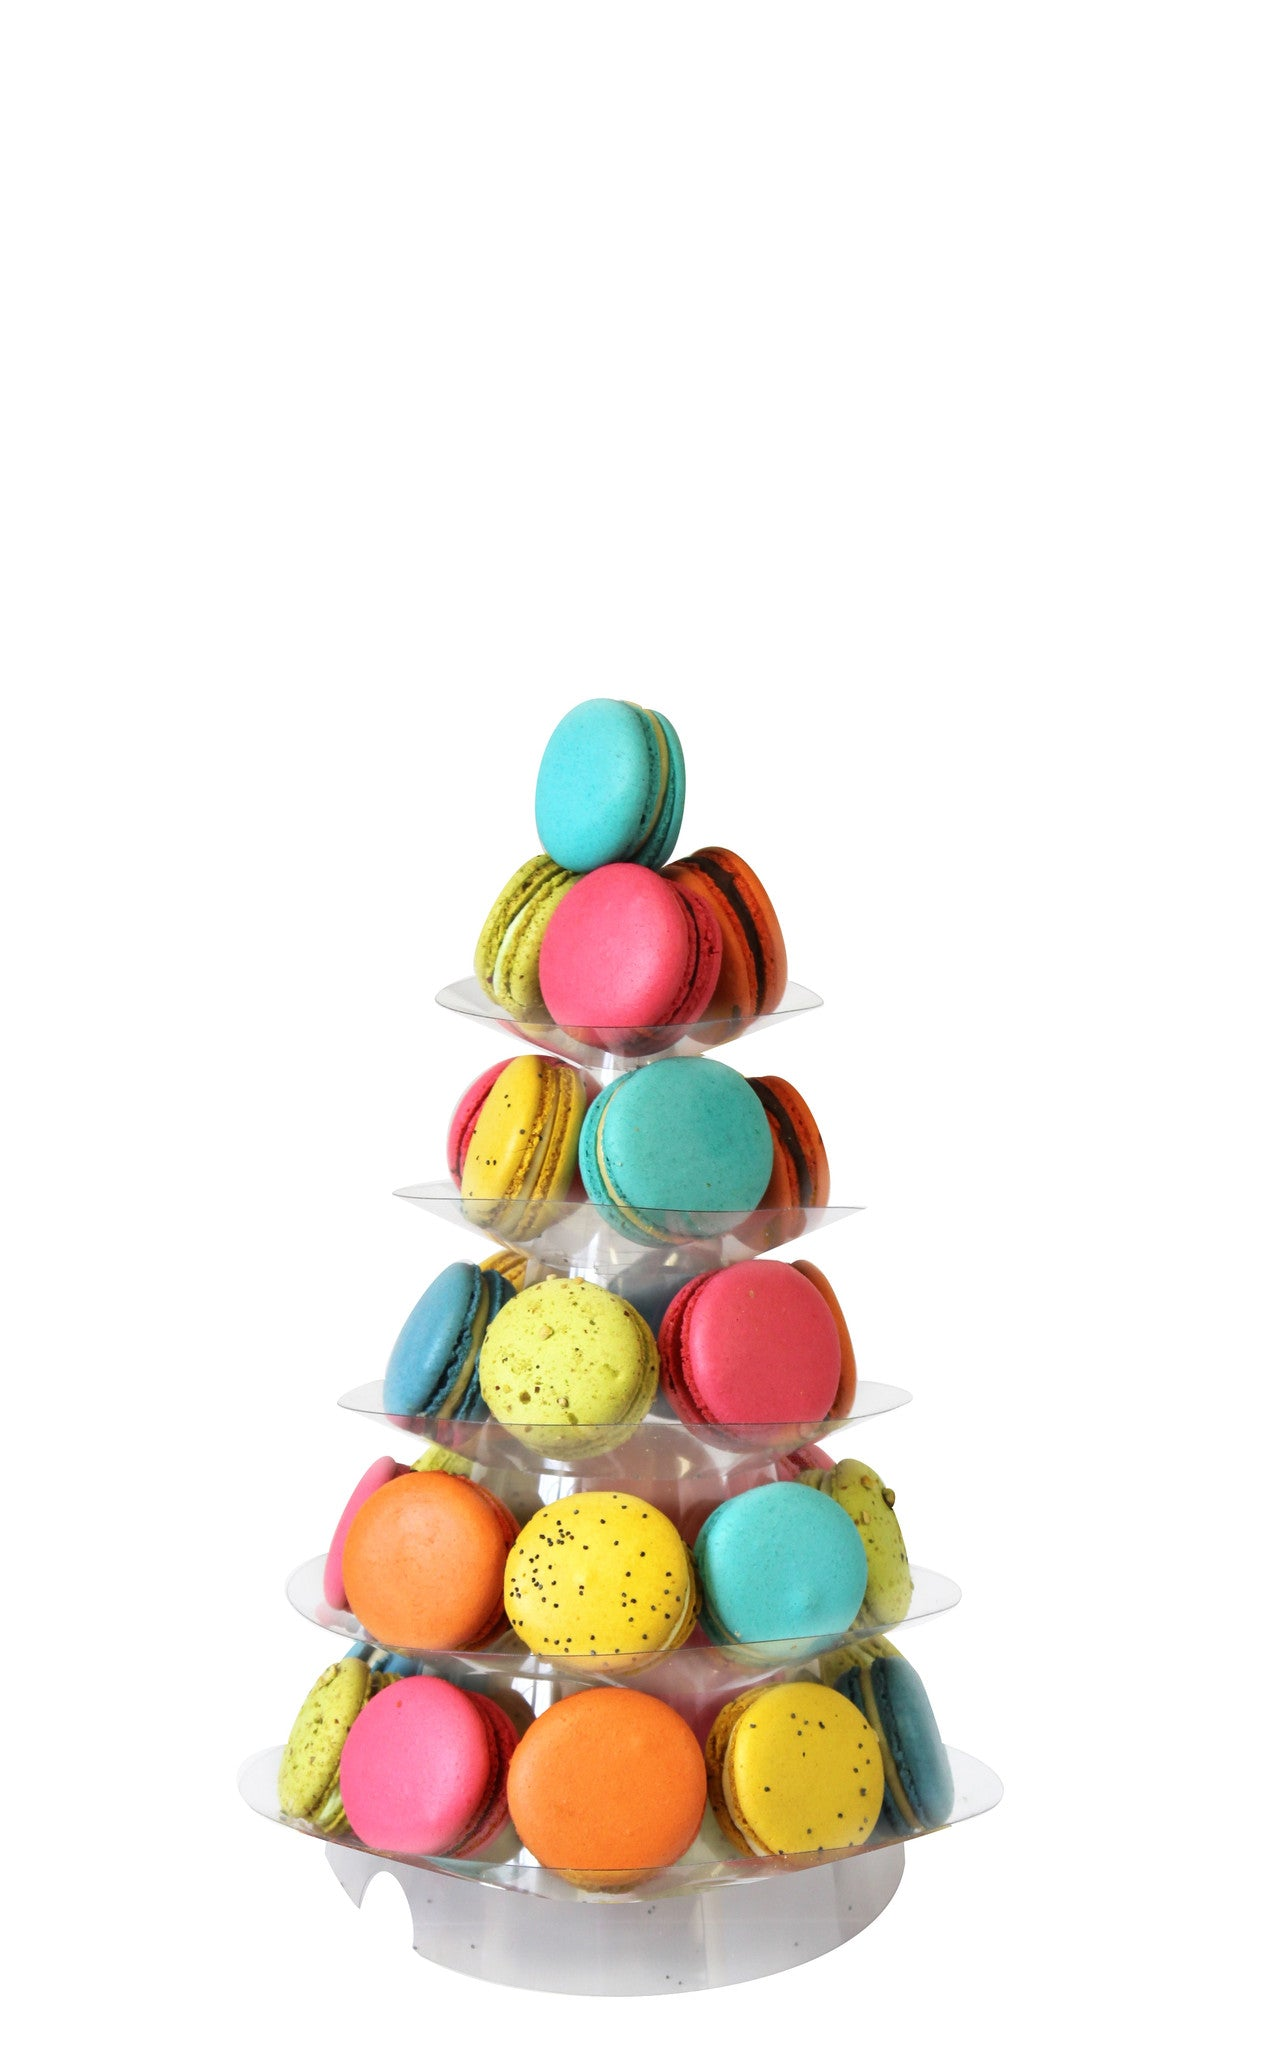 Macaron tower - Party time